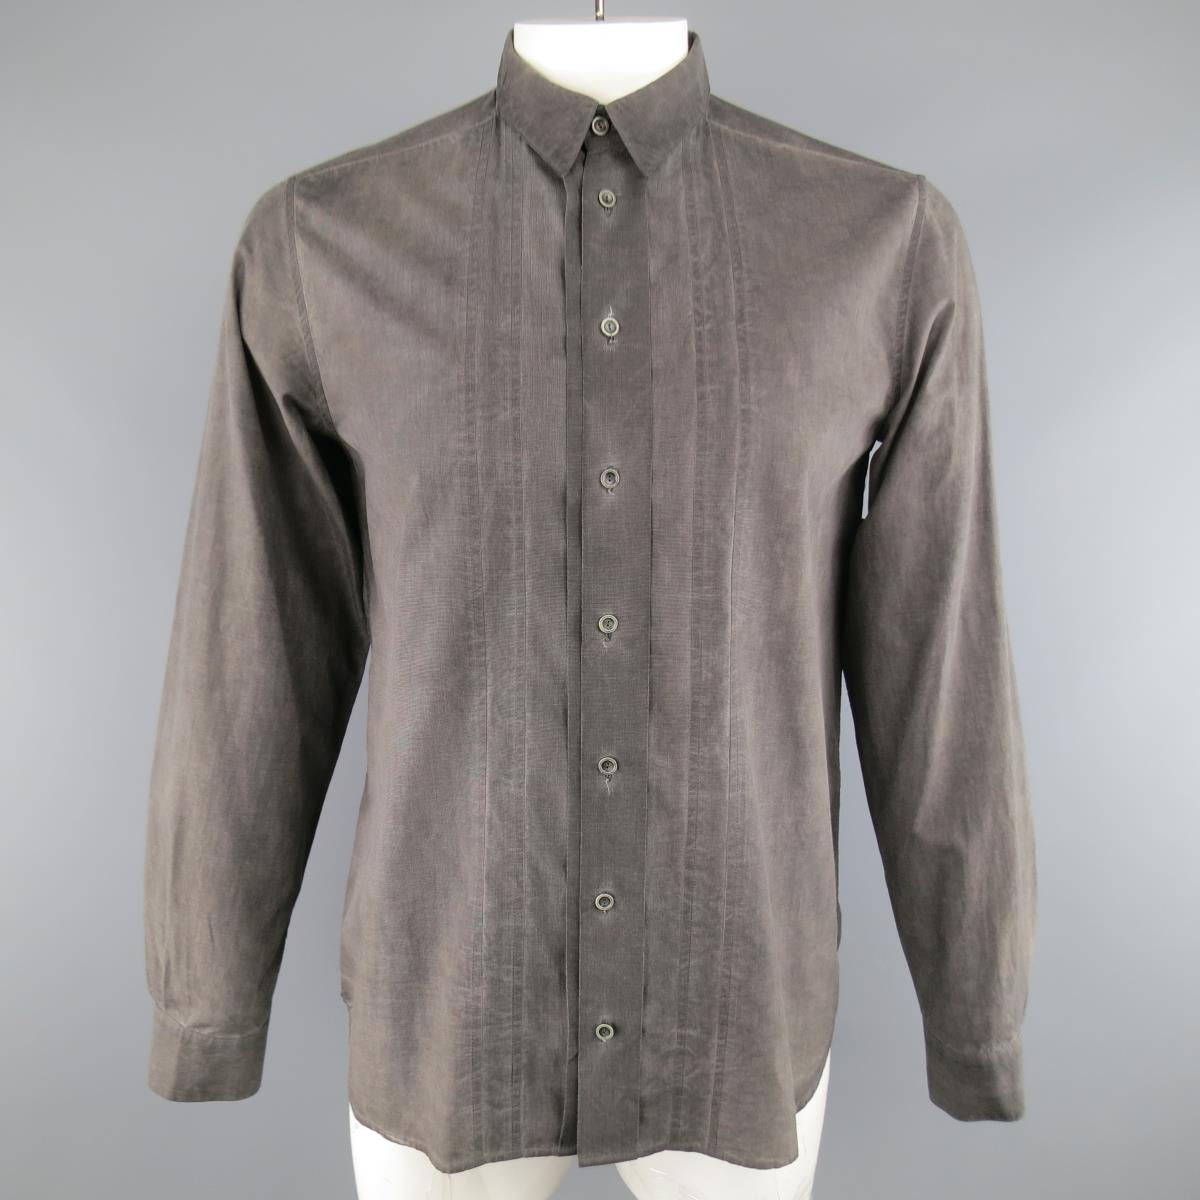 FORME-33204322896--Size-S -Charcoal-Washed-Dyed-Cotton-Long-Sleeve-Shirt 80247A.jpg v 1551900326 cce88da33